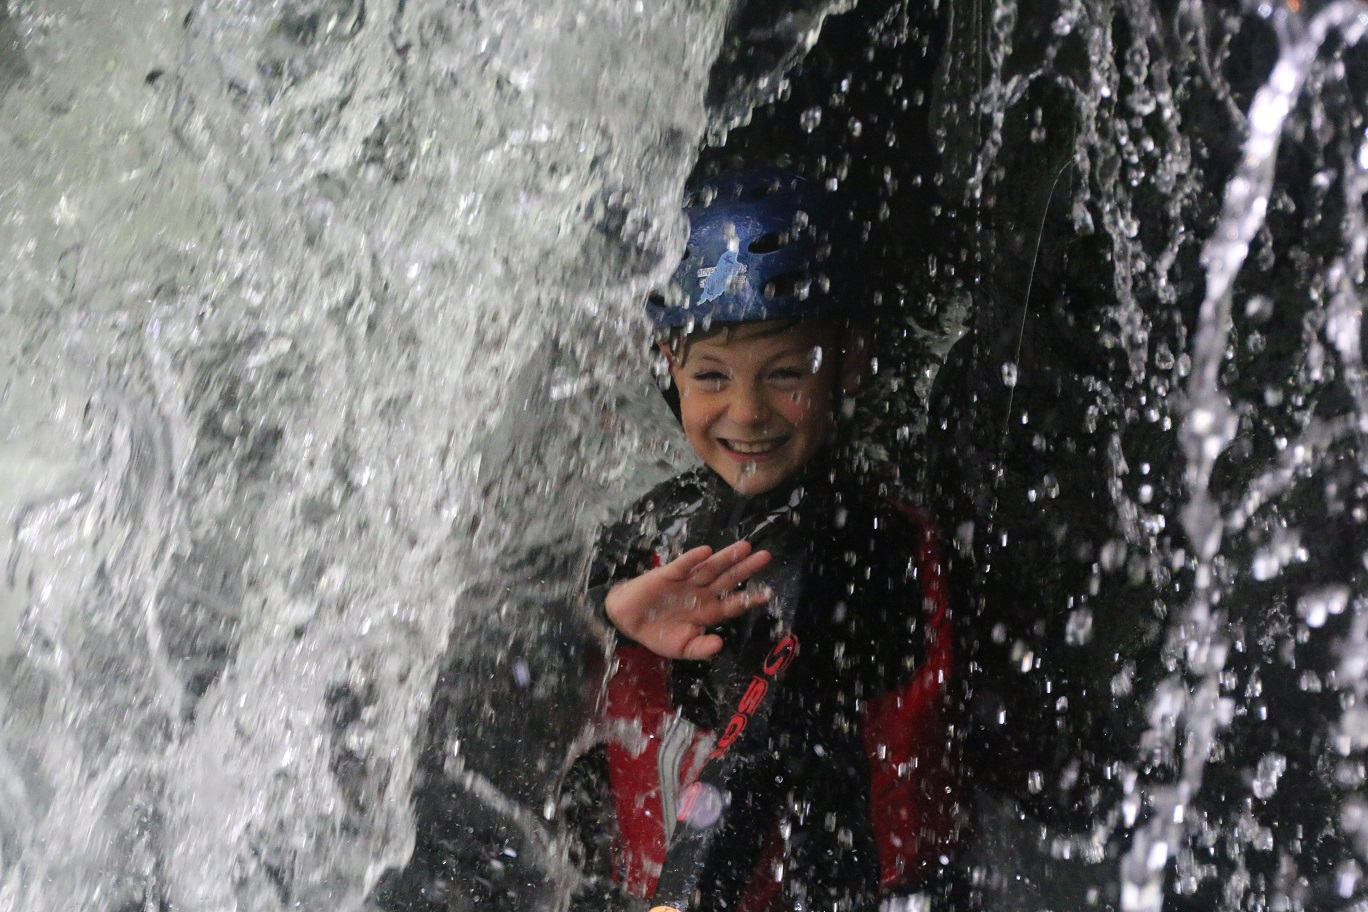 Participant behing waterfall during a Gorge Scrambling experience, Isle of Man